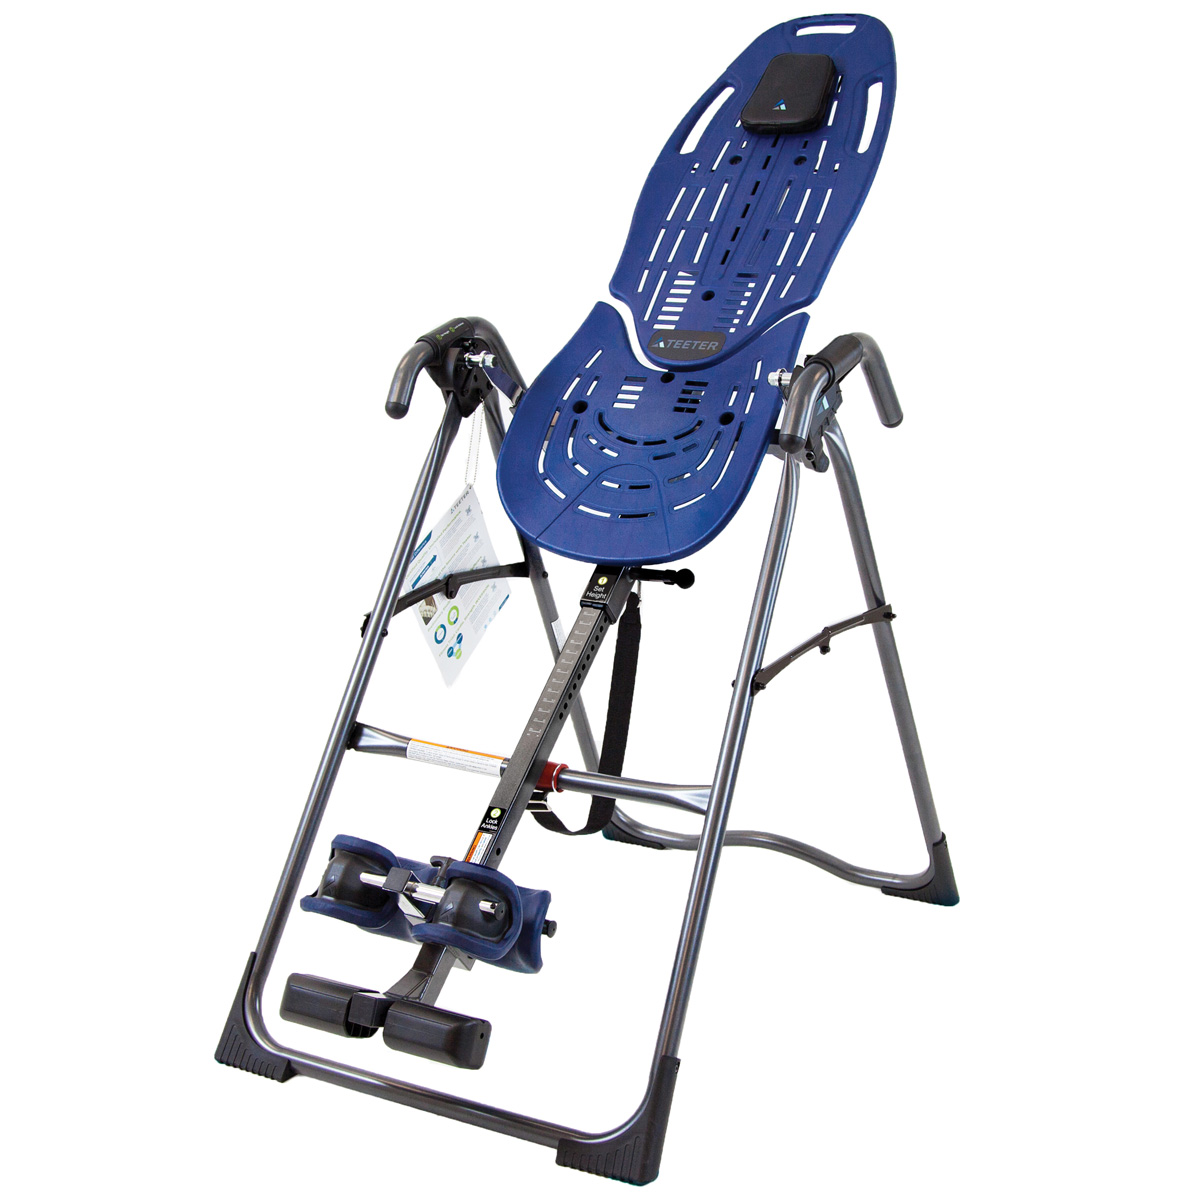 Teeter Inversion Table | Inversion Table | Back Pain Relief